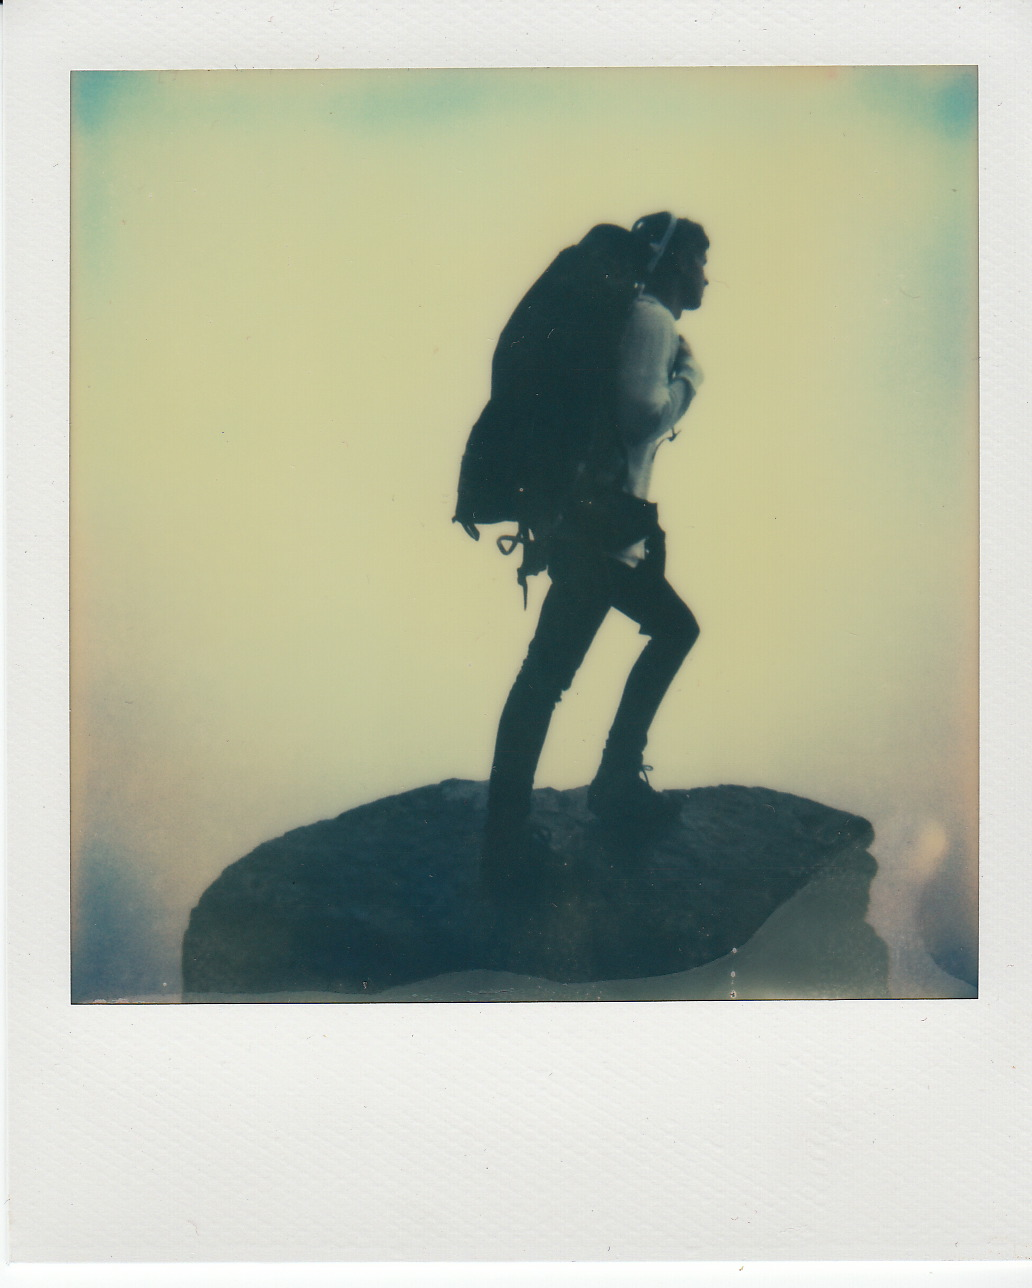 ©   Lonnie Webb    A polaroid of my friend Caleb during our hike last Saturday